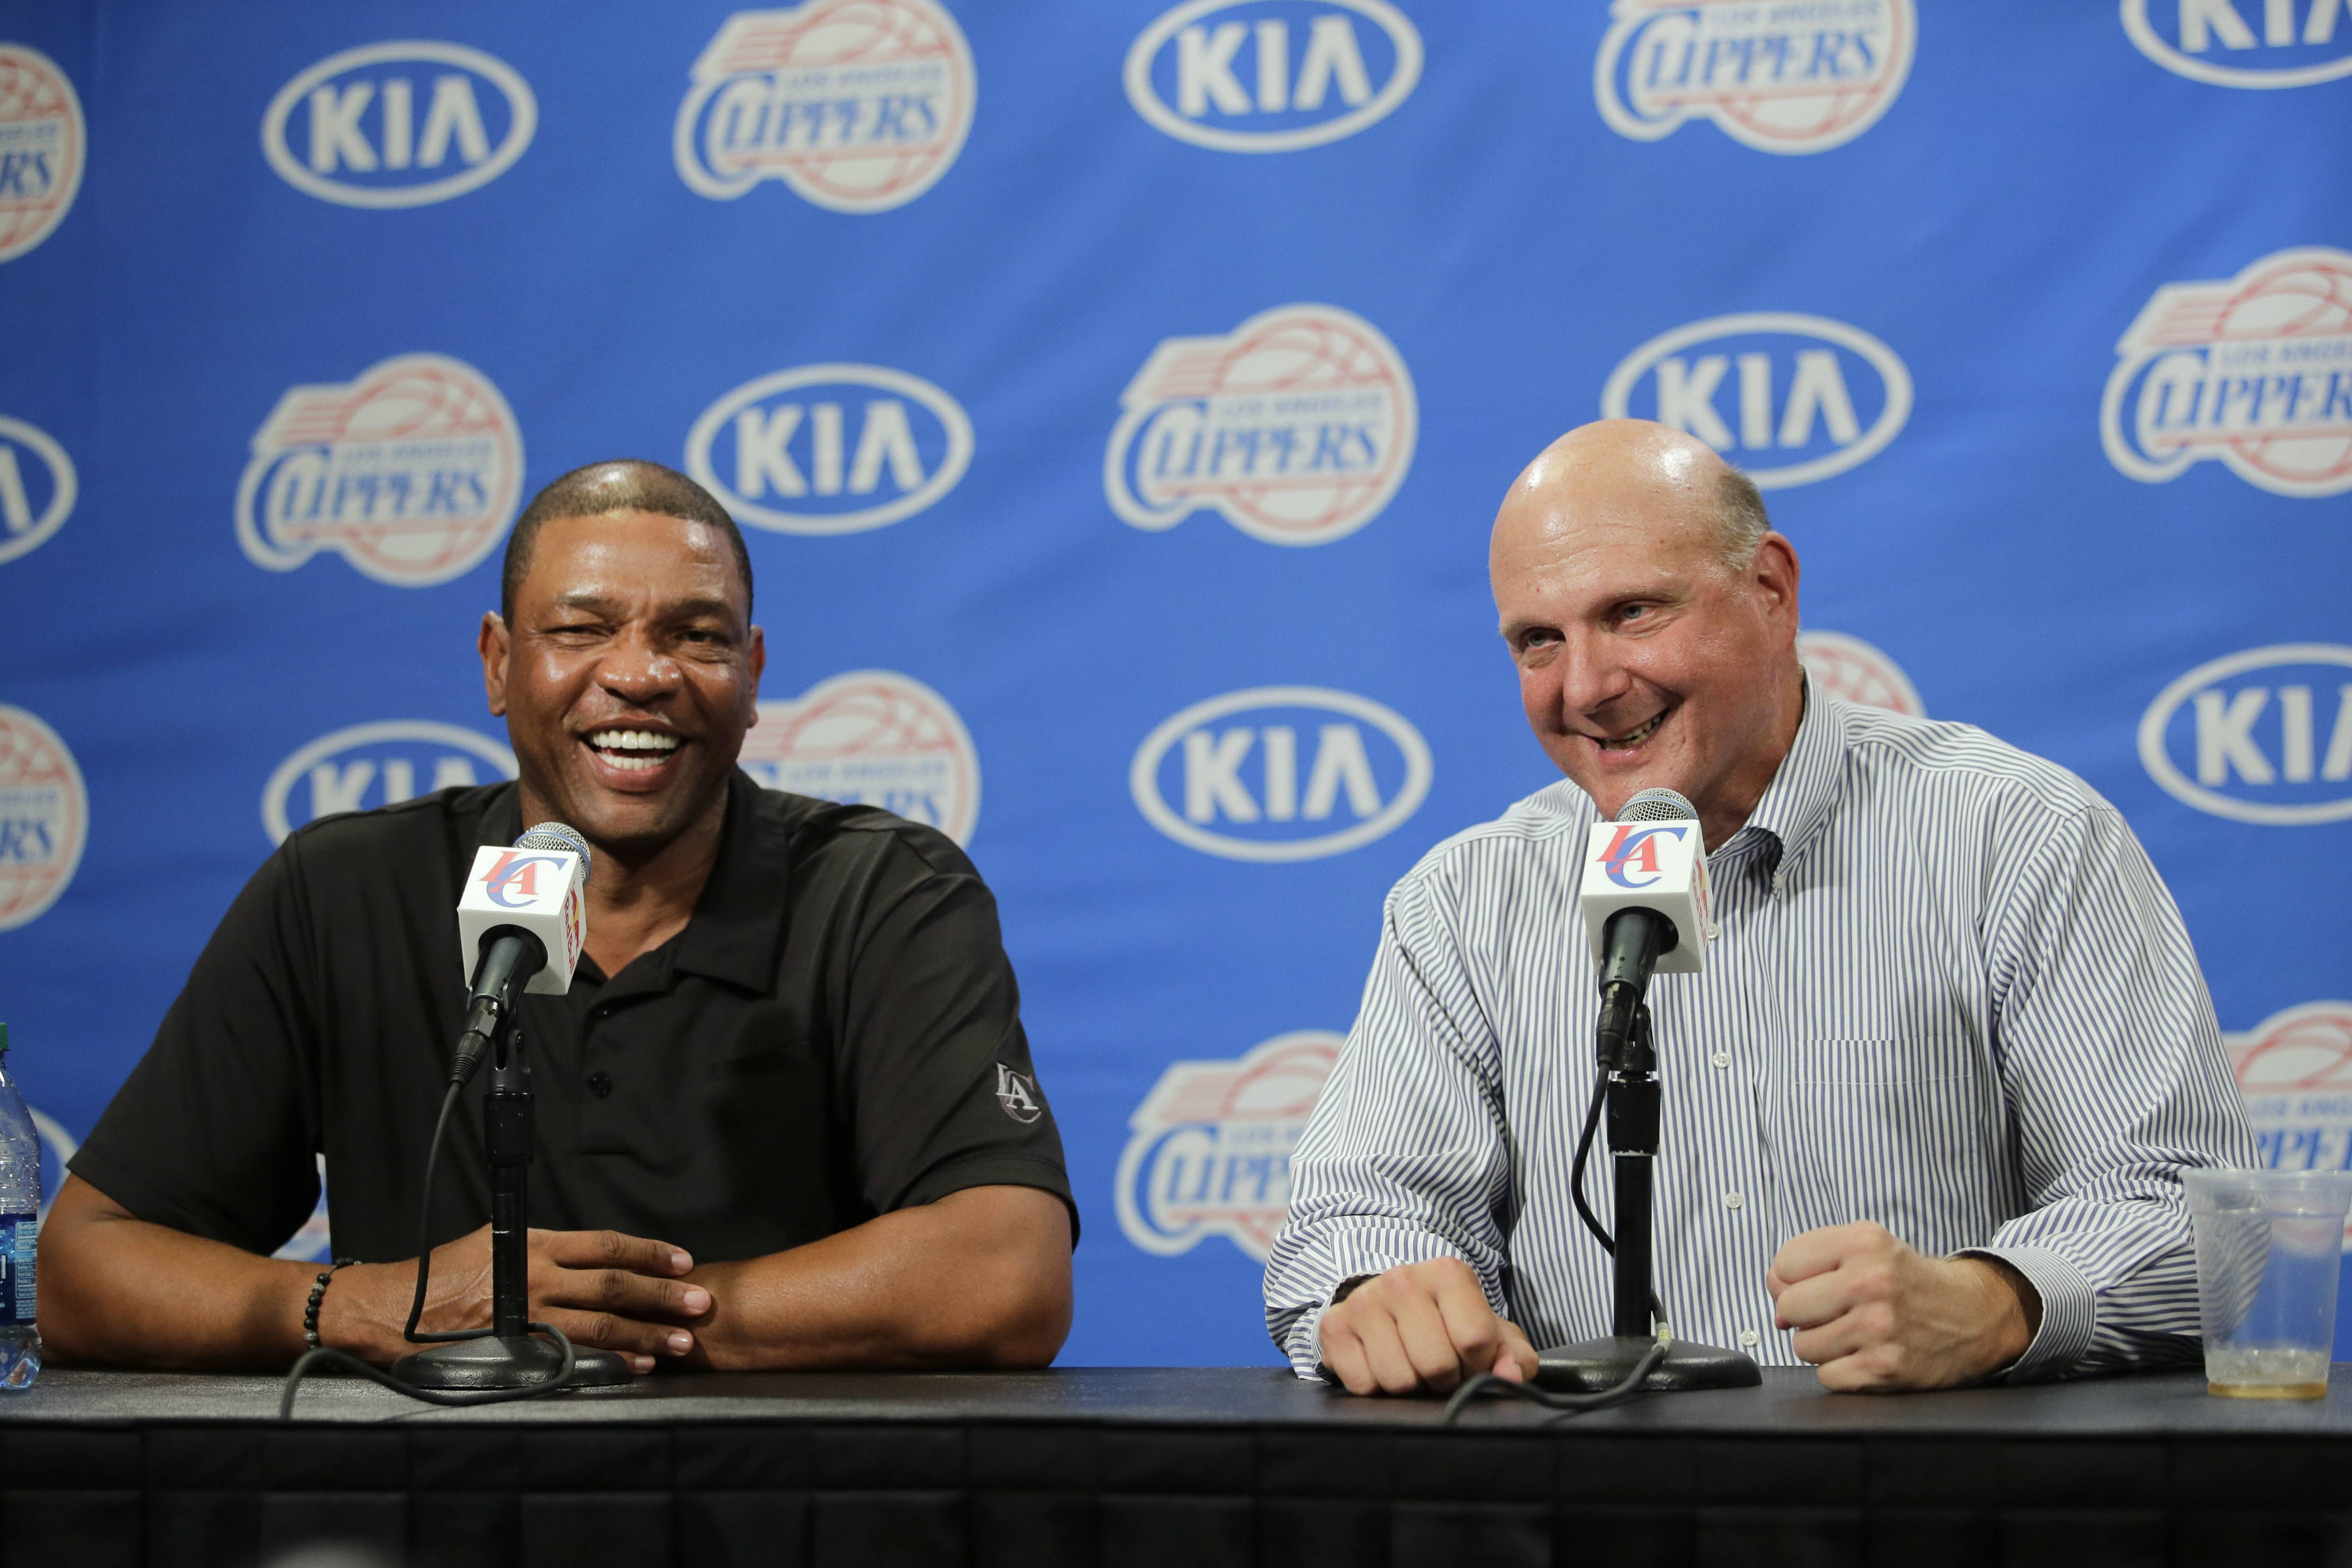 Doc Rivers is staying with the Los Angeles Clippers for another five years. In Steve Ballmer's first big move since taking over as the new owner, he gave Rivers a contract extension through the 2018-19 season.